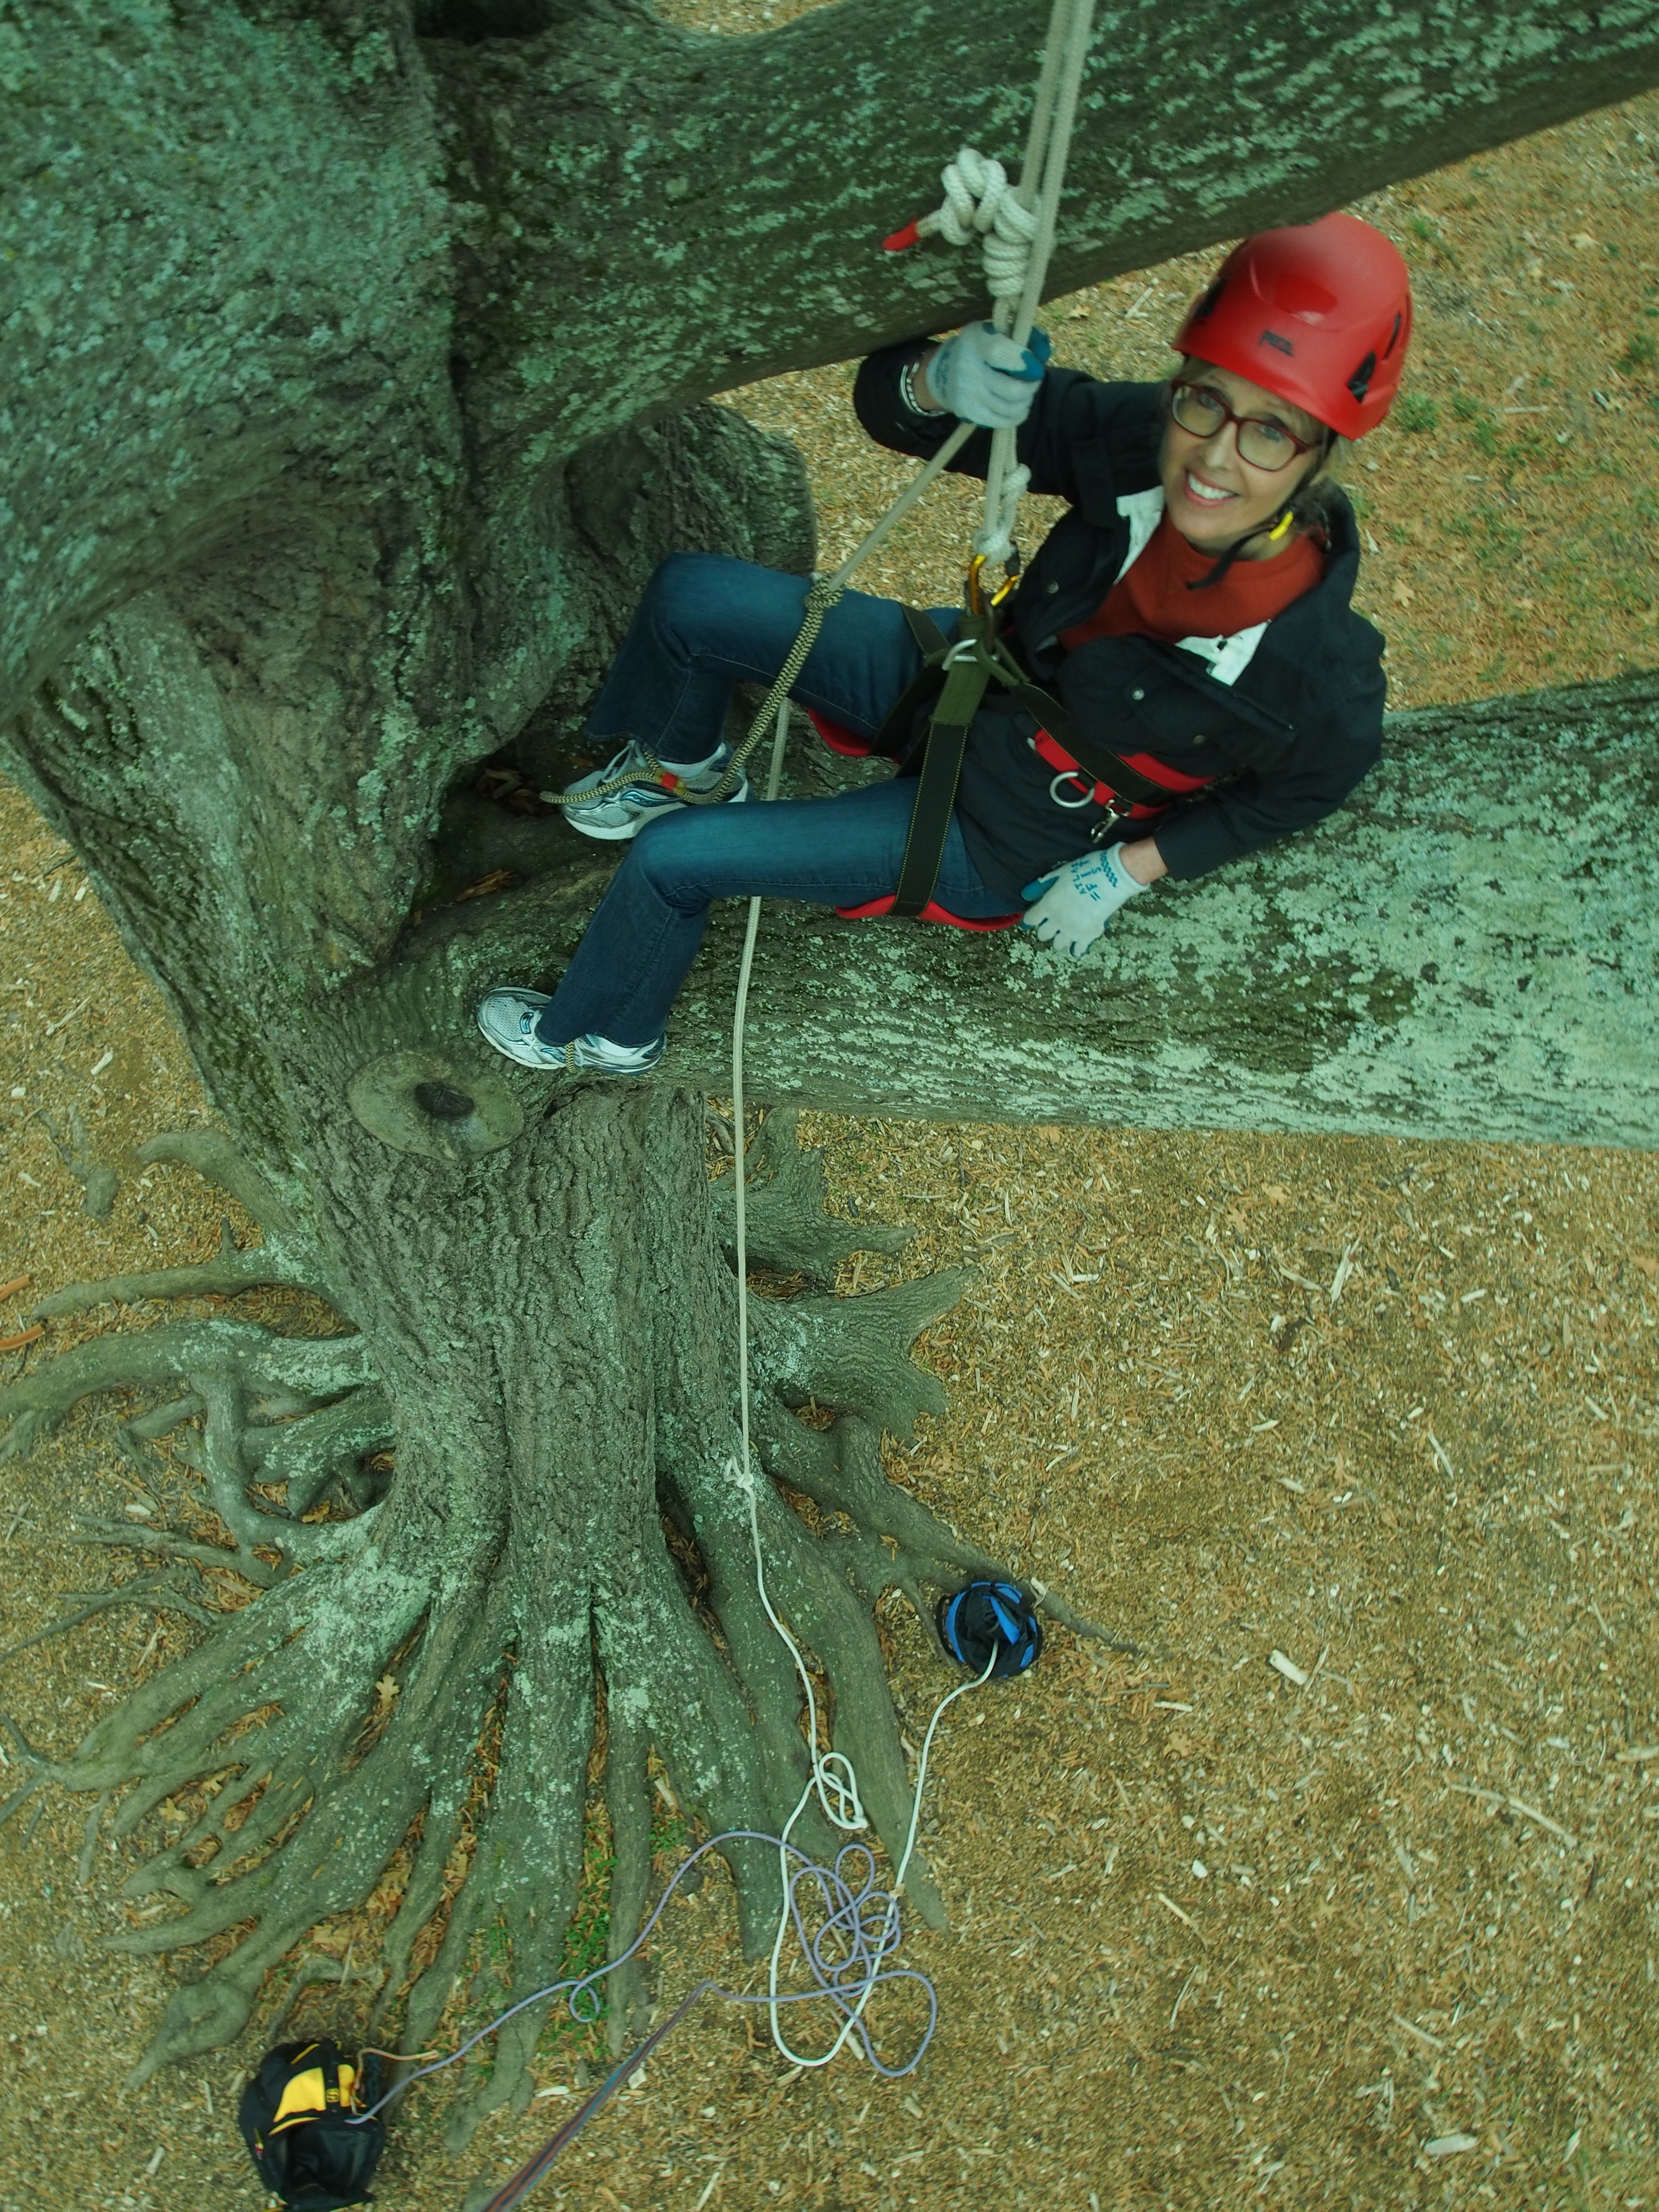 American Forests' VP of Communications, Lea Sloan, about 20 feet up in a tree's canopy.